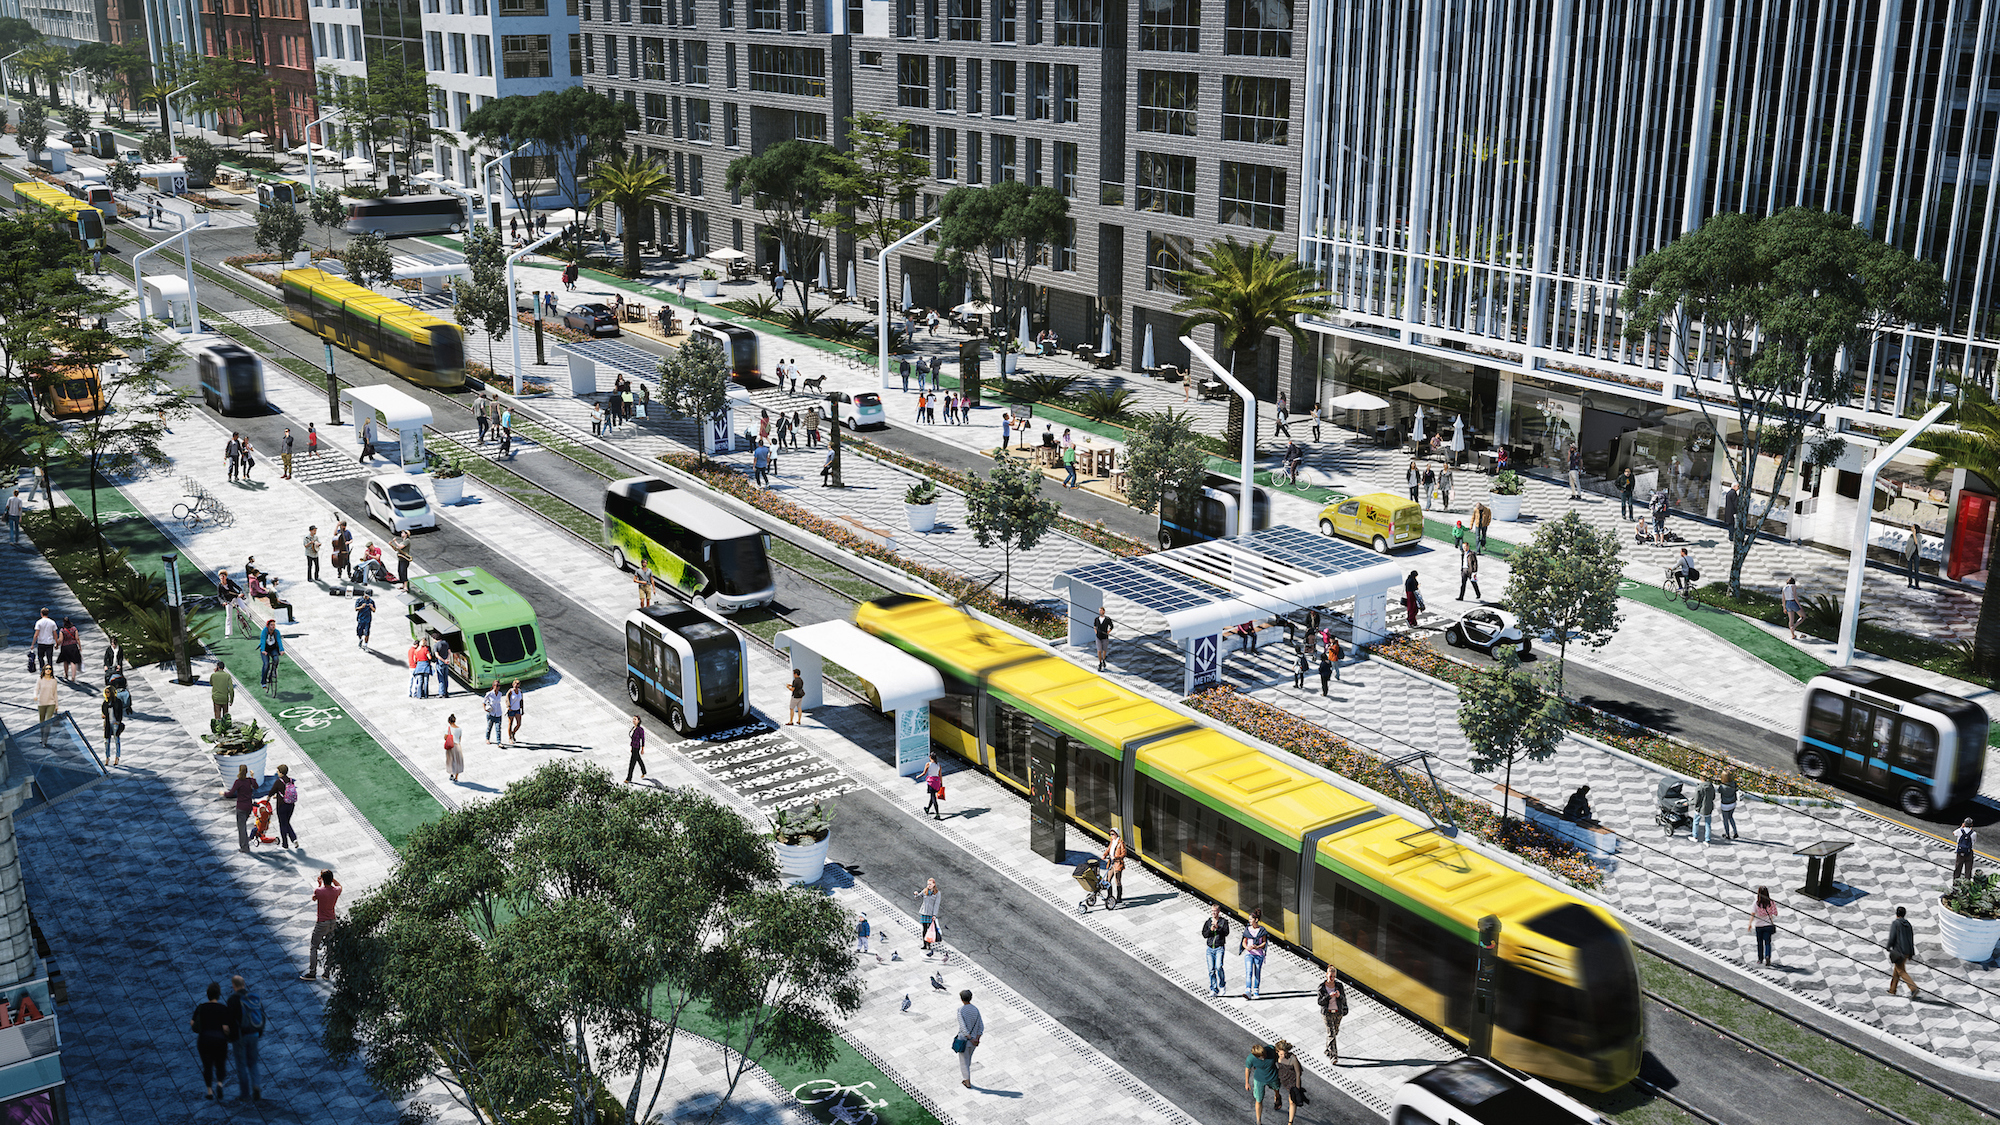 This rendering is based off of concepts in the NACTO Blueprint for Autonomous Urbanism, guidelines to help cities take a people-first approach for new mobility technology.